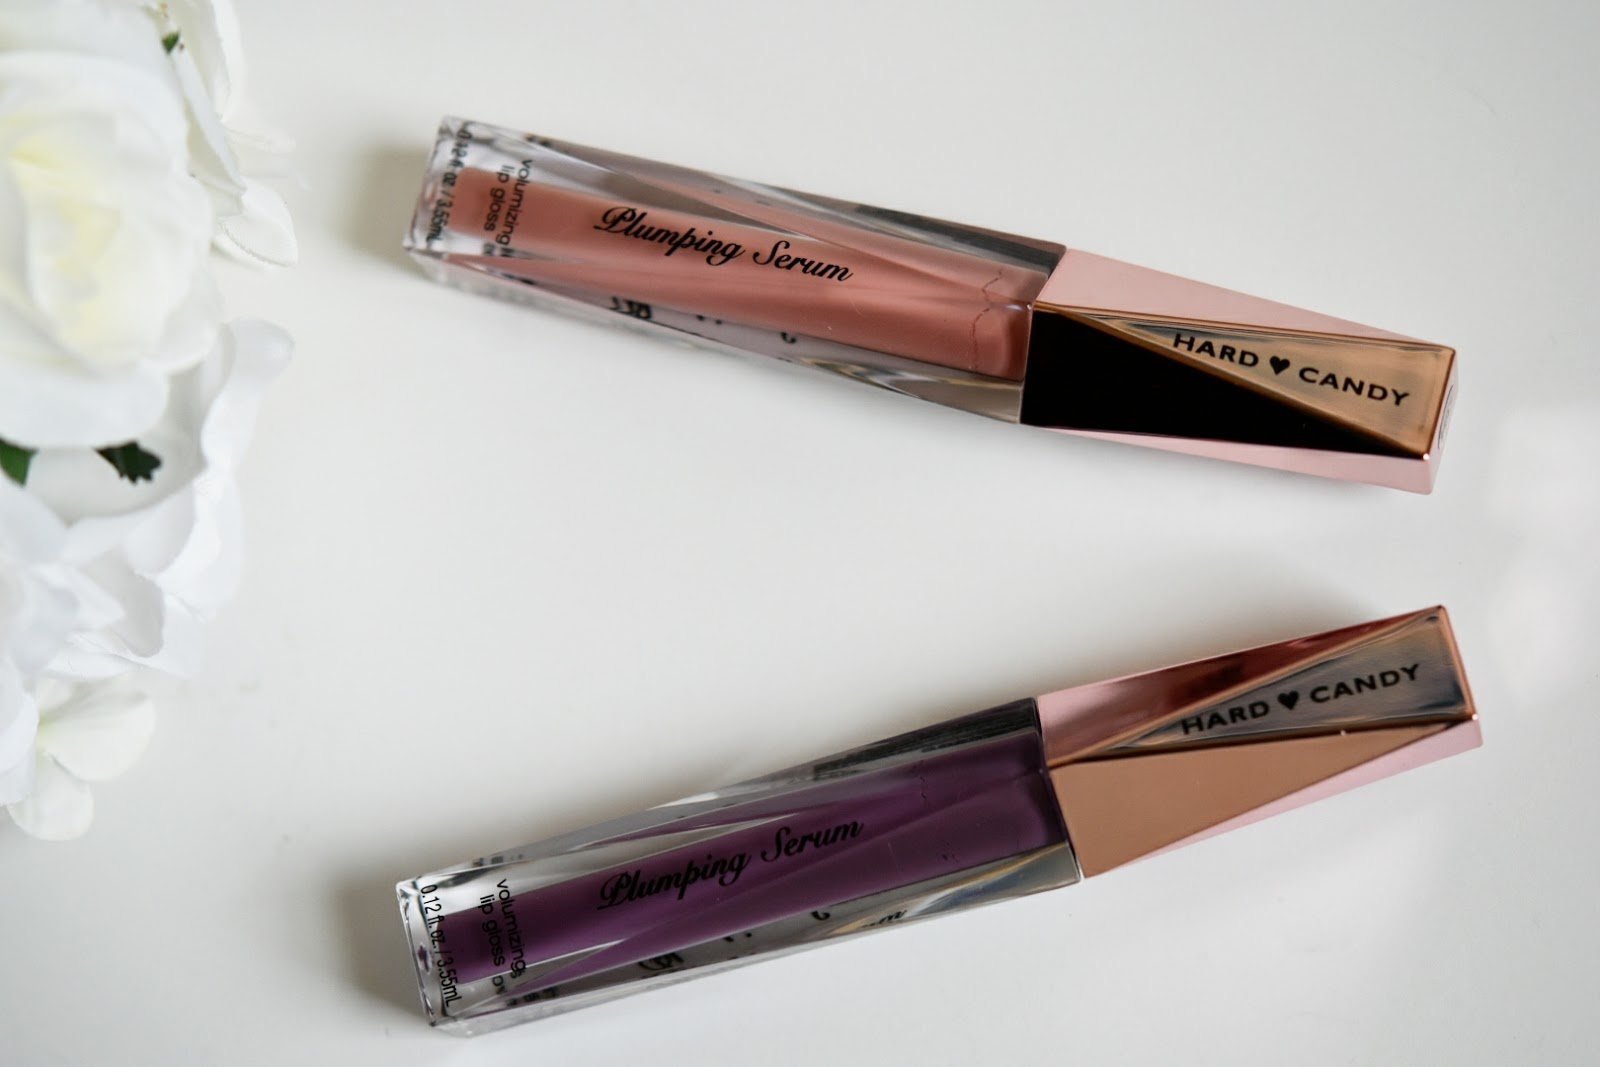 Hard Candy Plumping Serum Review: Win 3 Lip Gloss Giveaway Ends Feb 12th  via  www.productreviewmom.com